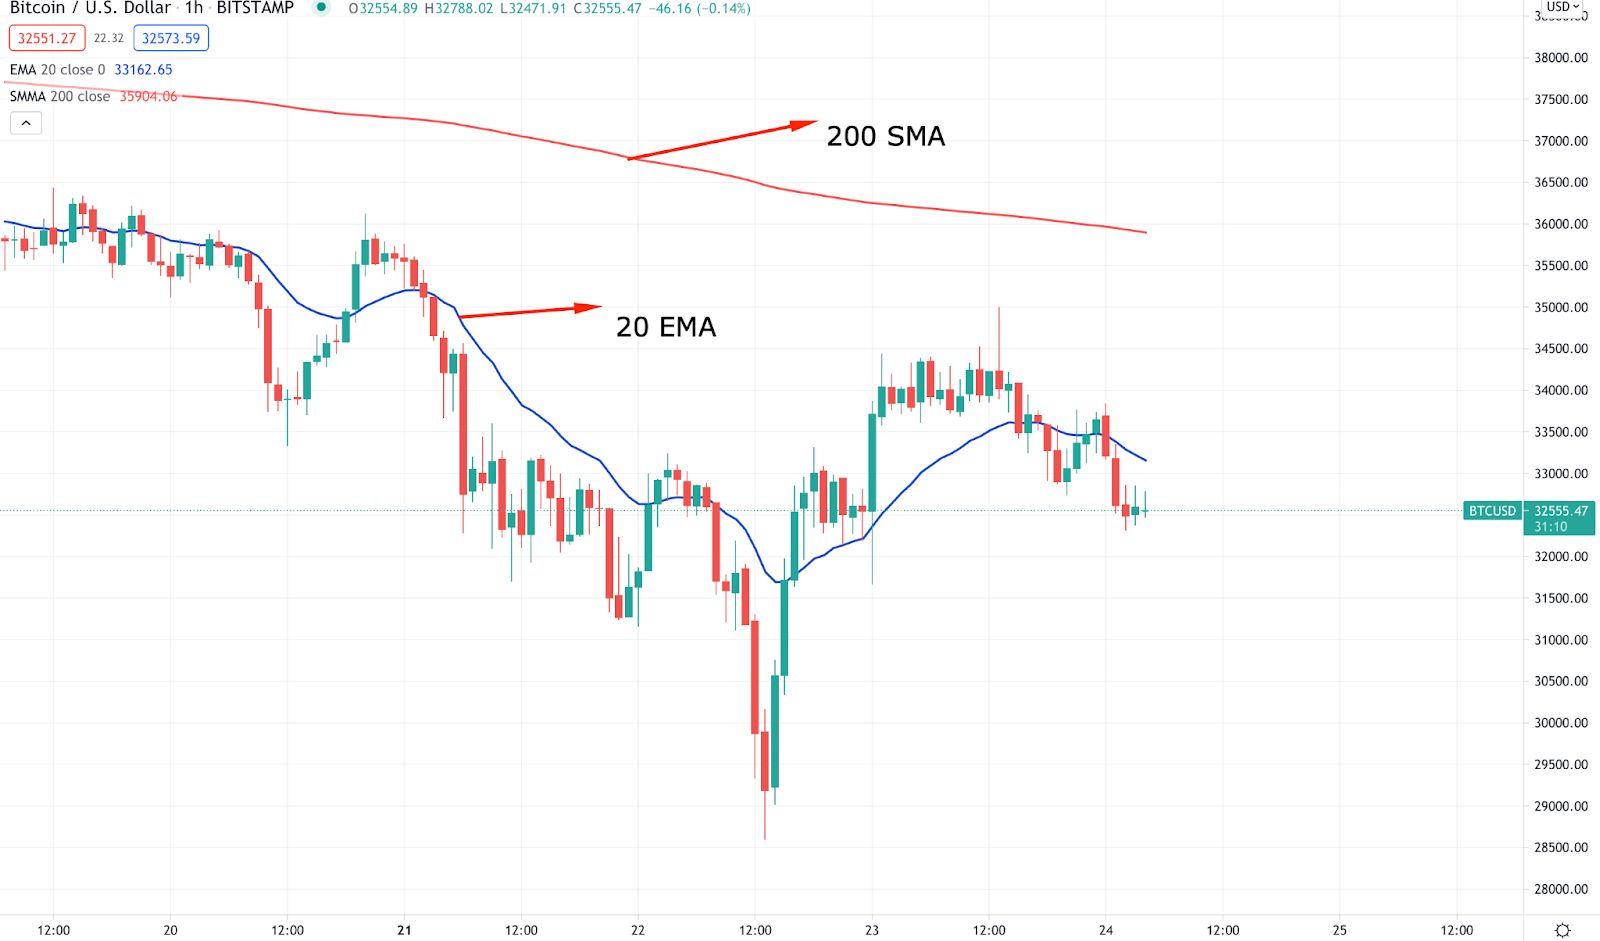 Simple moving average technical indicator.